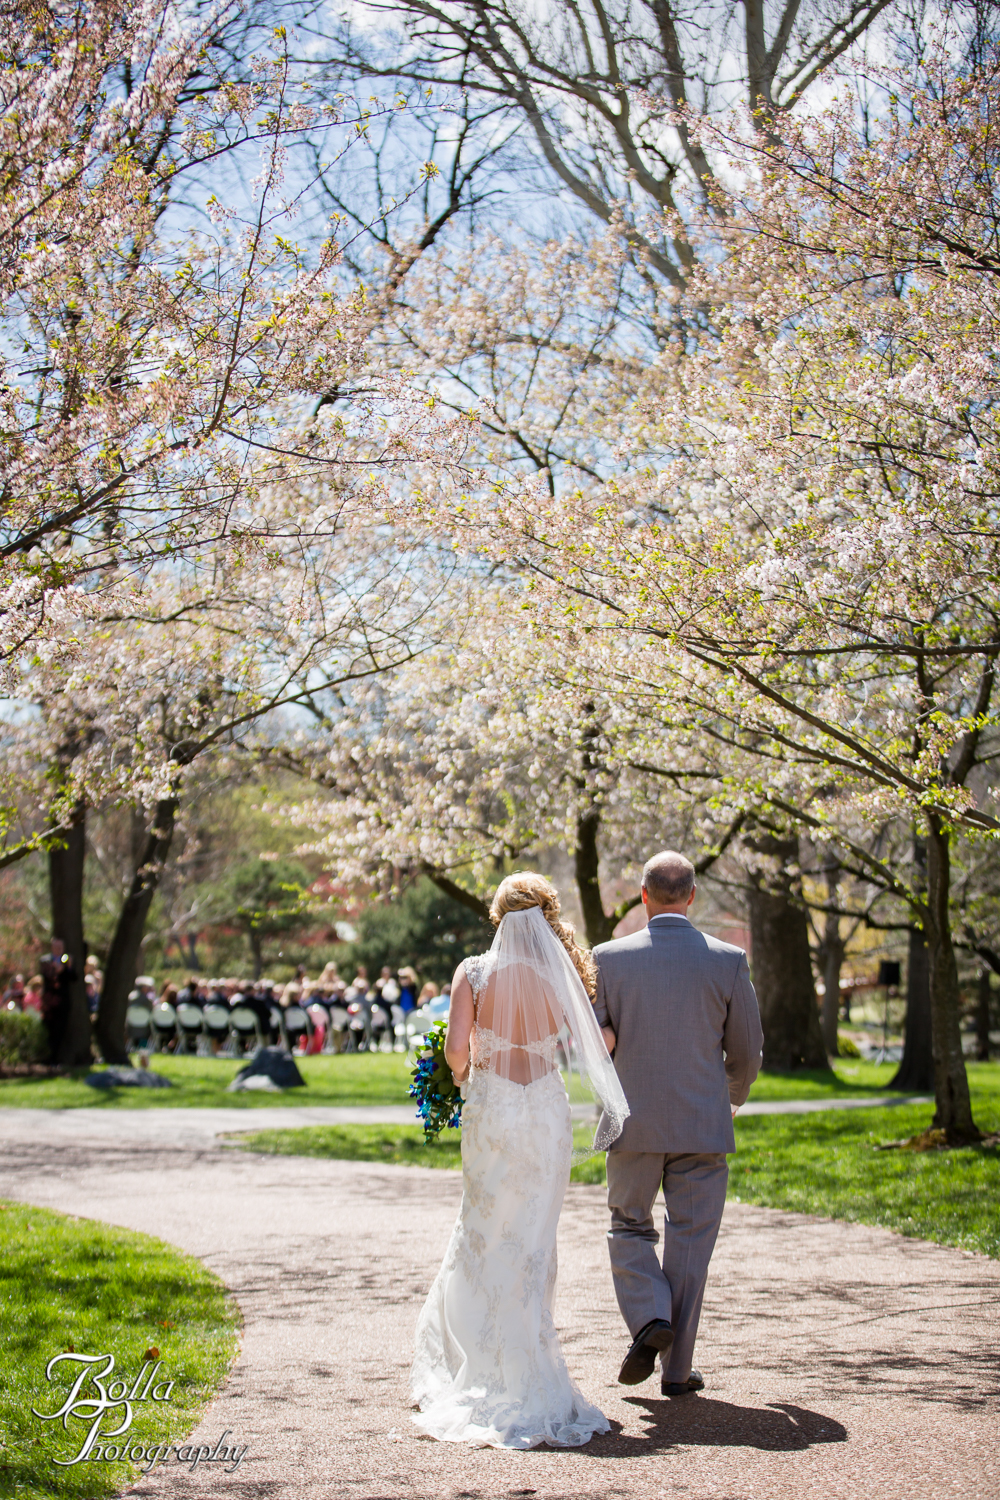 Bolla_Photography_St_Louis_wedding_photographer_Morgando_Blues_hockey_Botanical_Gardens_spring-0170.jpg